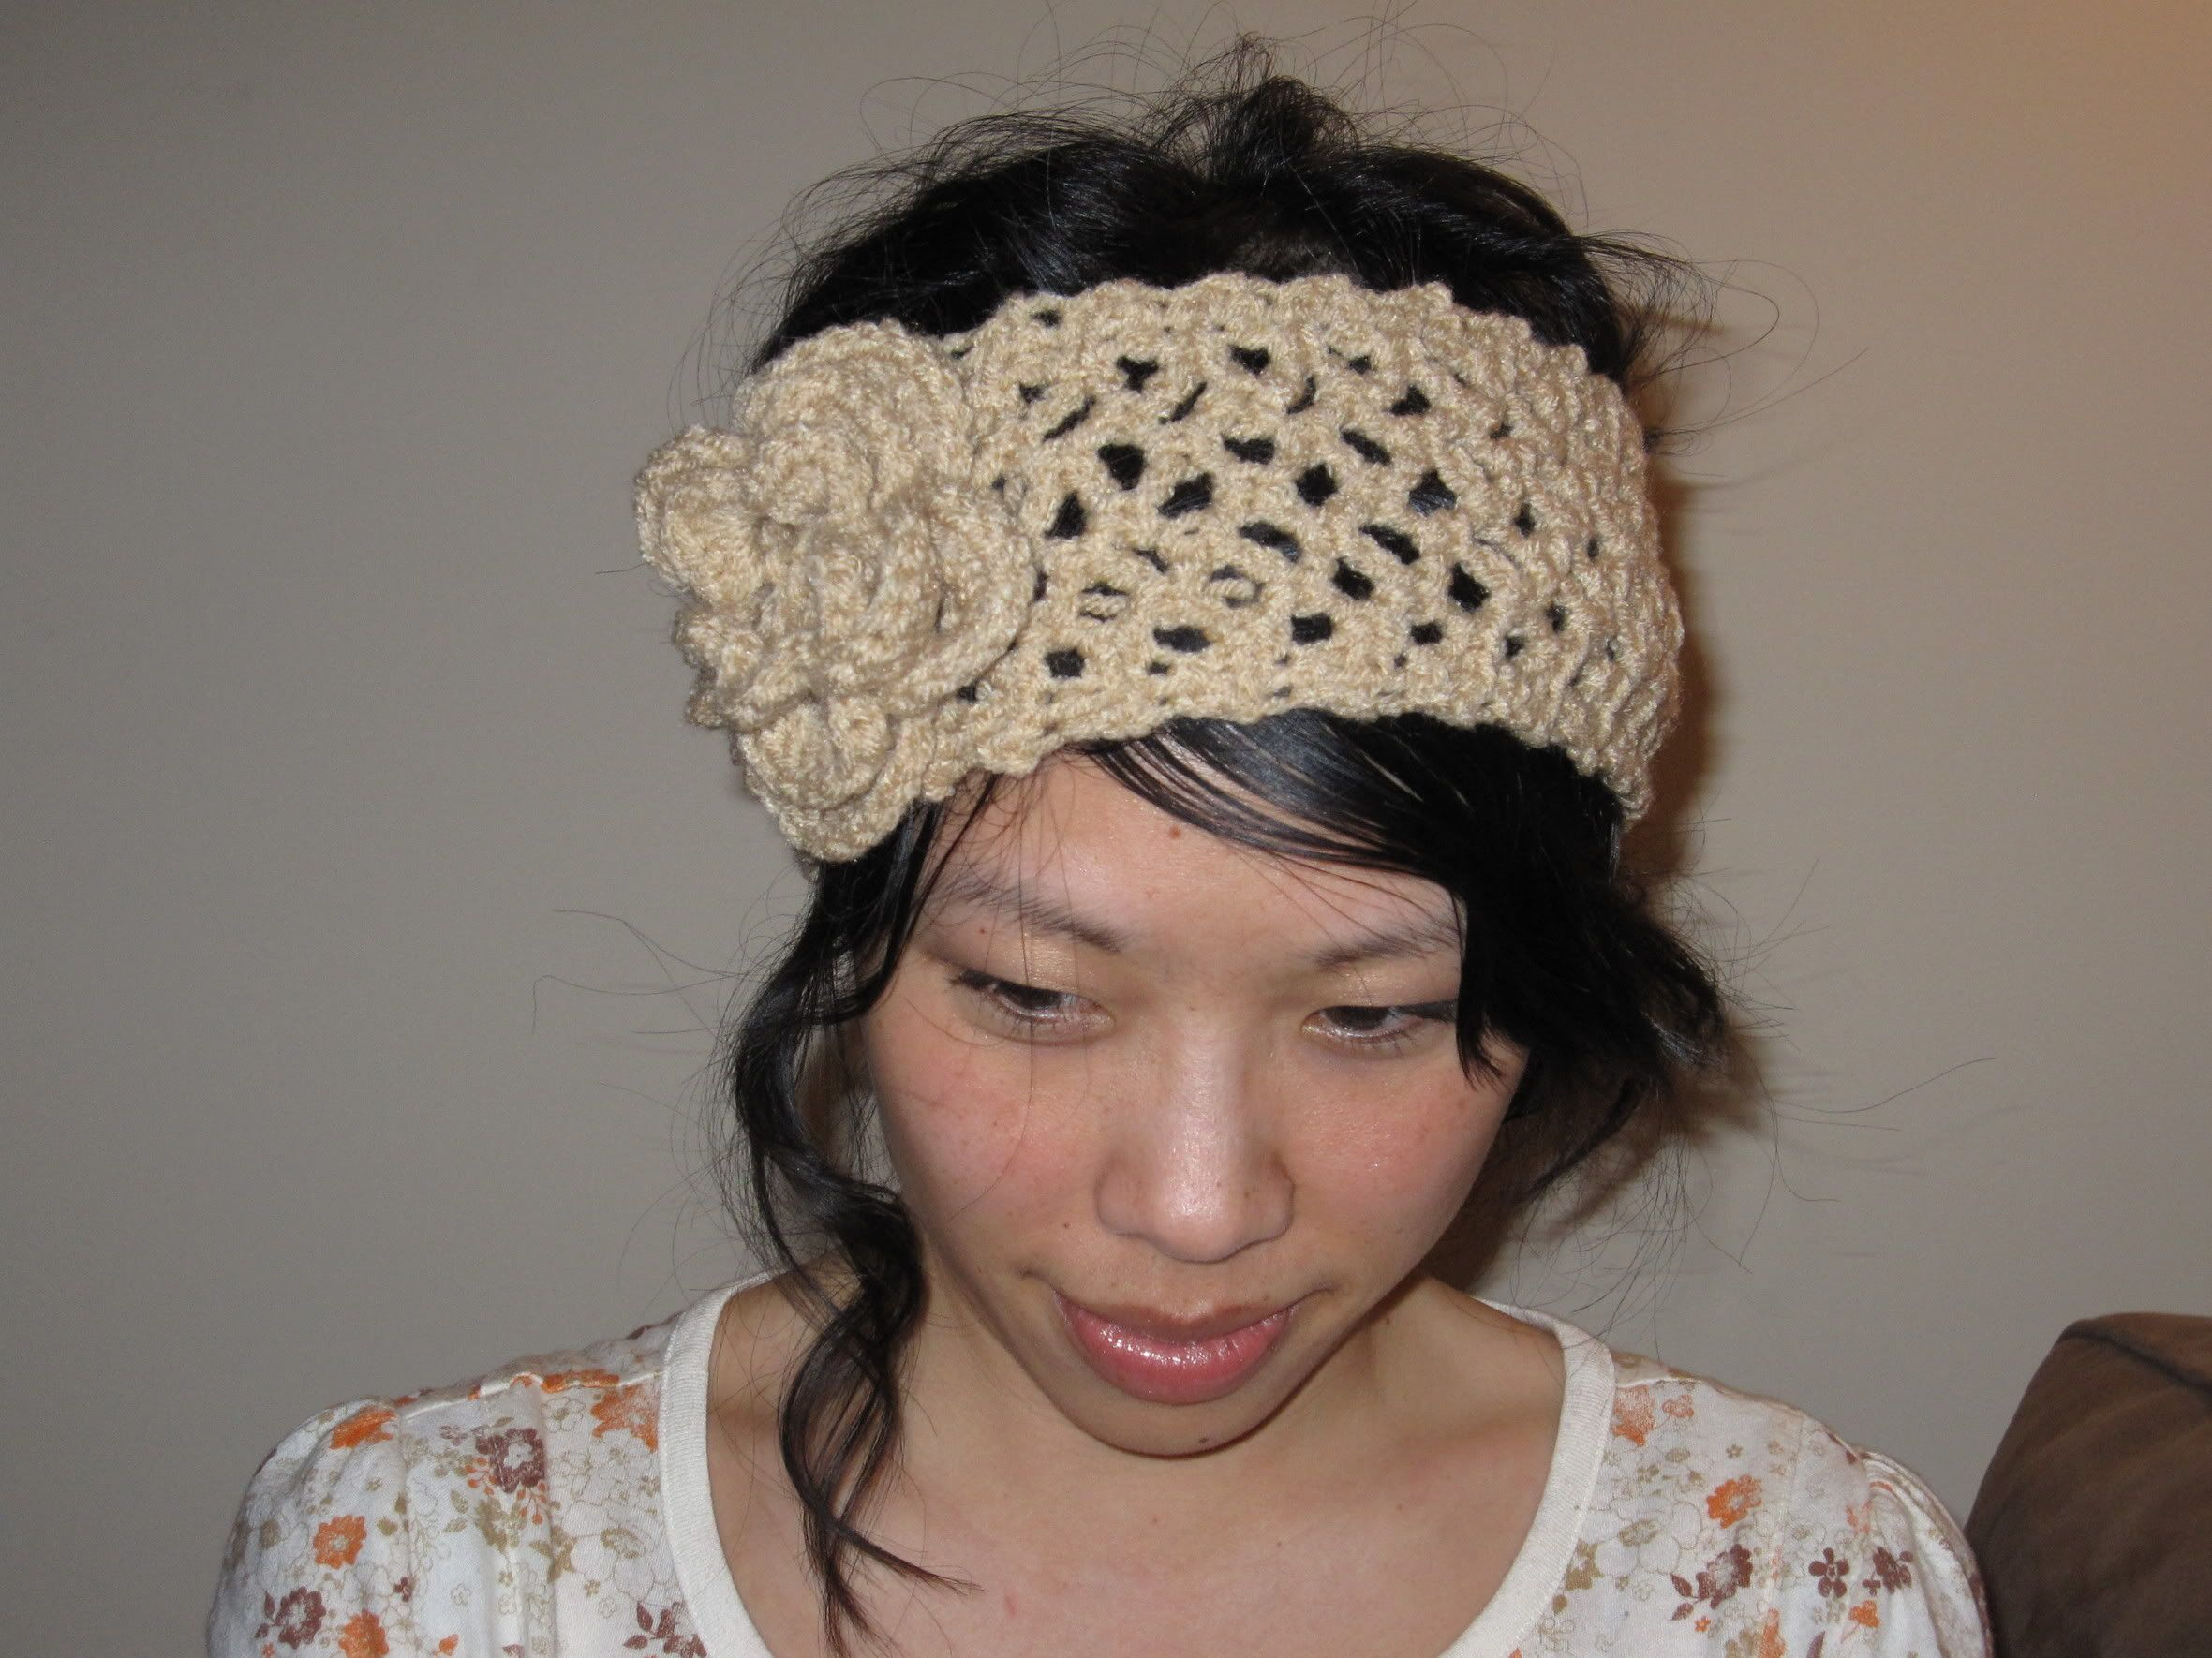 Free Crochet Pattern For Ladies Headband : Free Crochet Headband Patterns For Women www.galleryhip ...